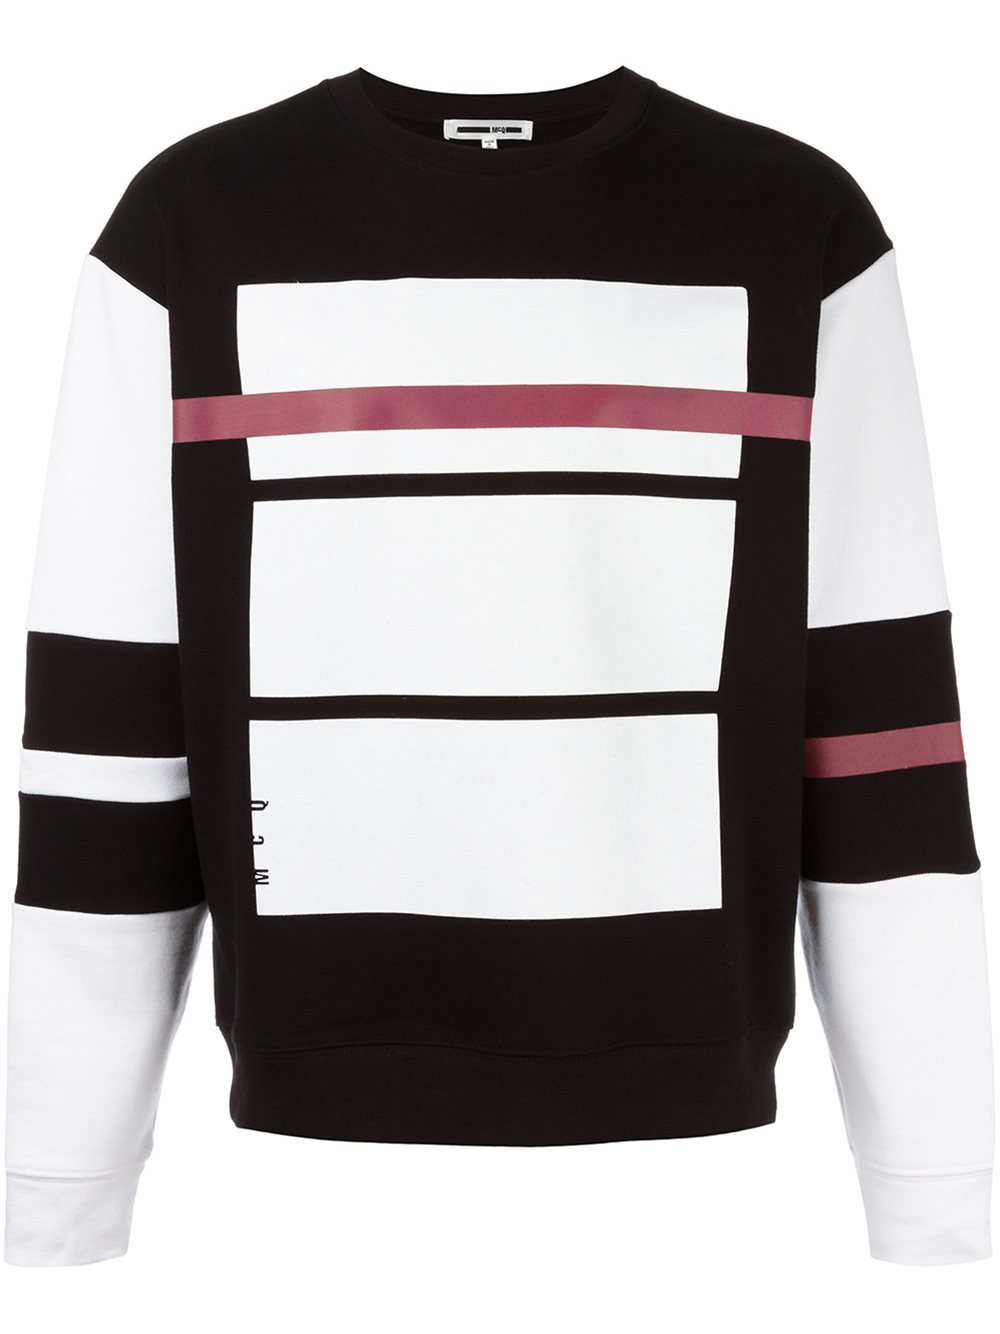 mcq alexander mcqueen red line print sweatshirt in black